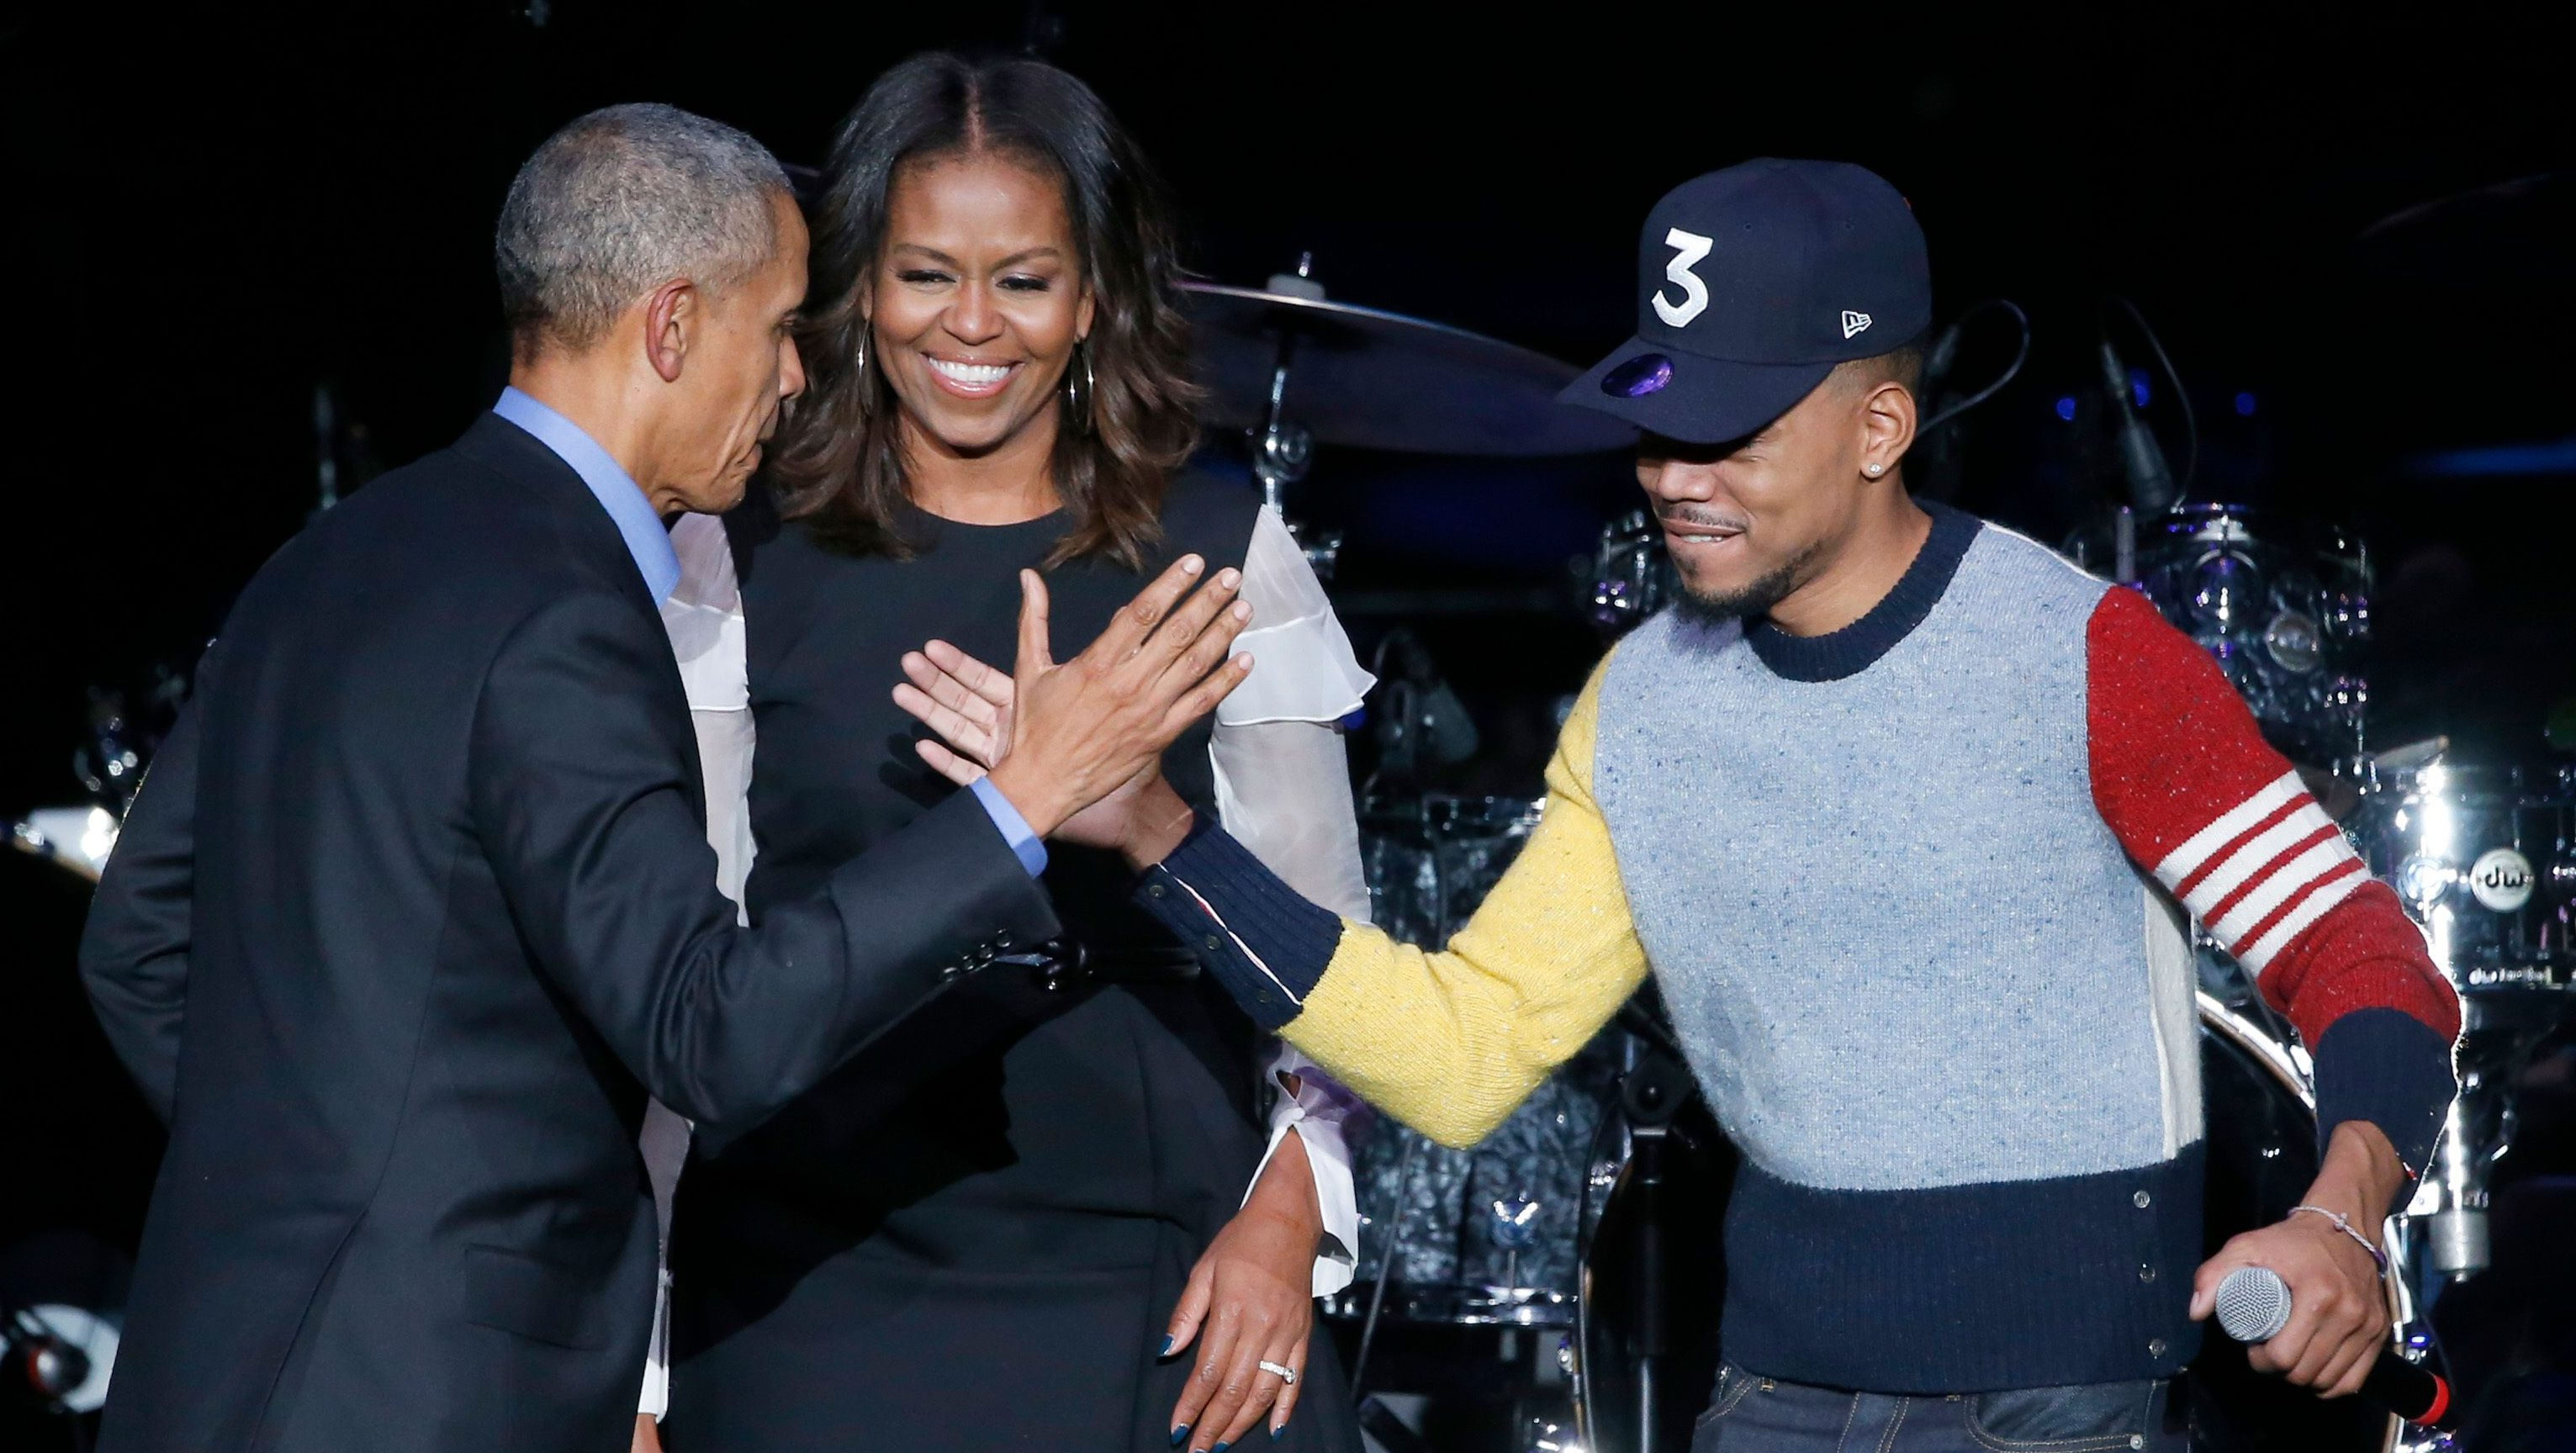 Michelle Obama, Chance The Rapper, Barack Obama